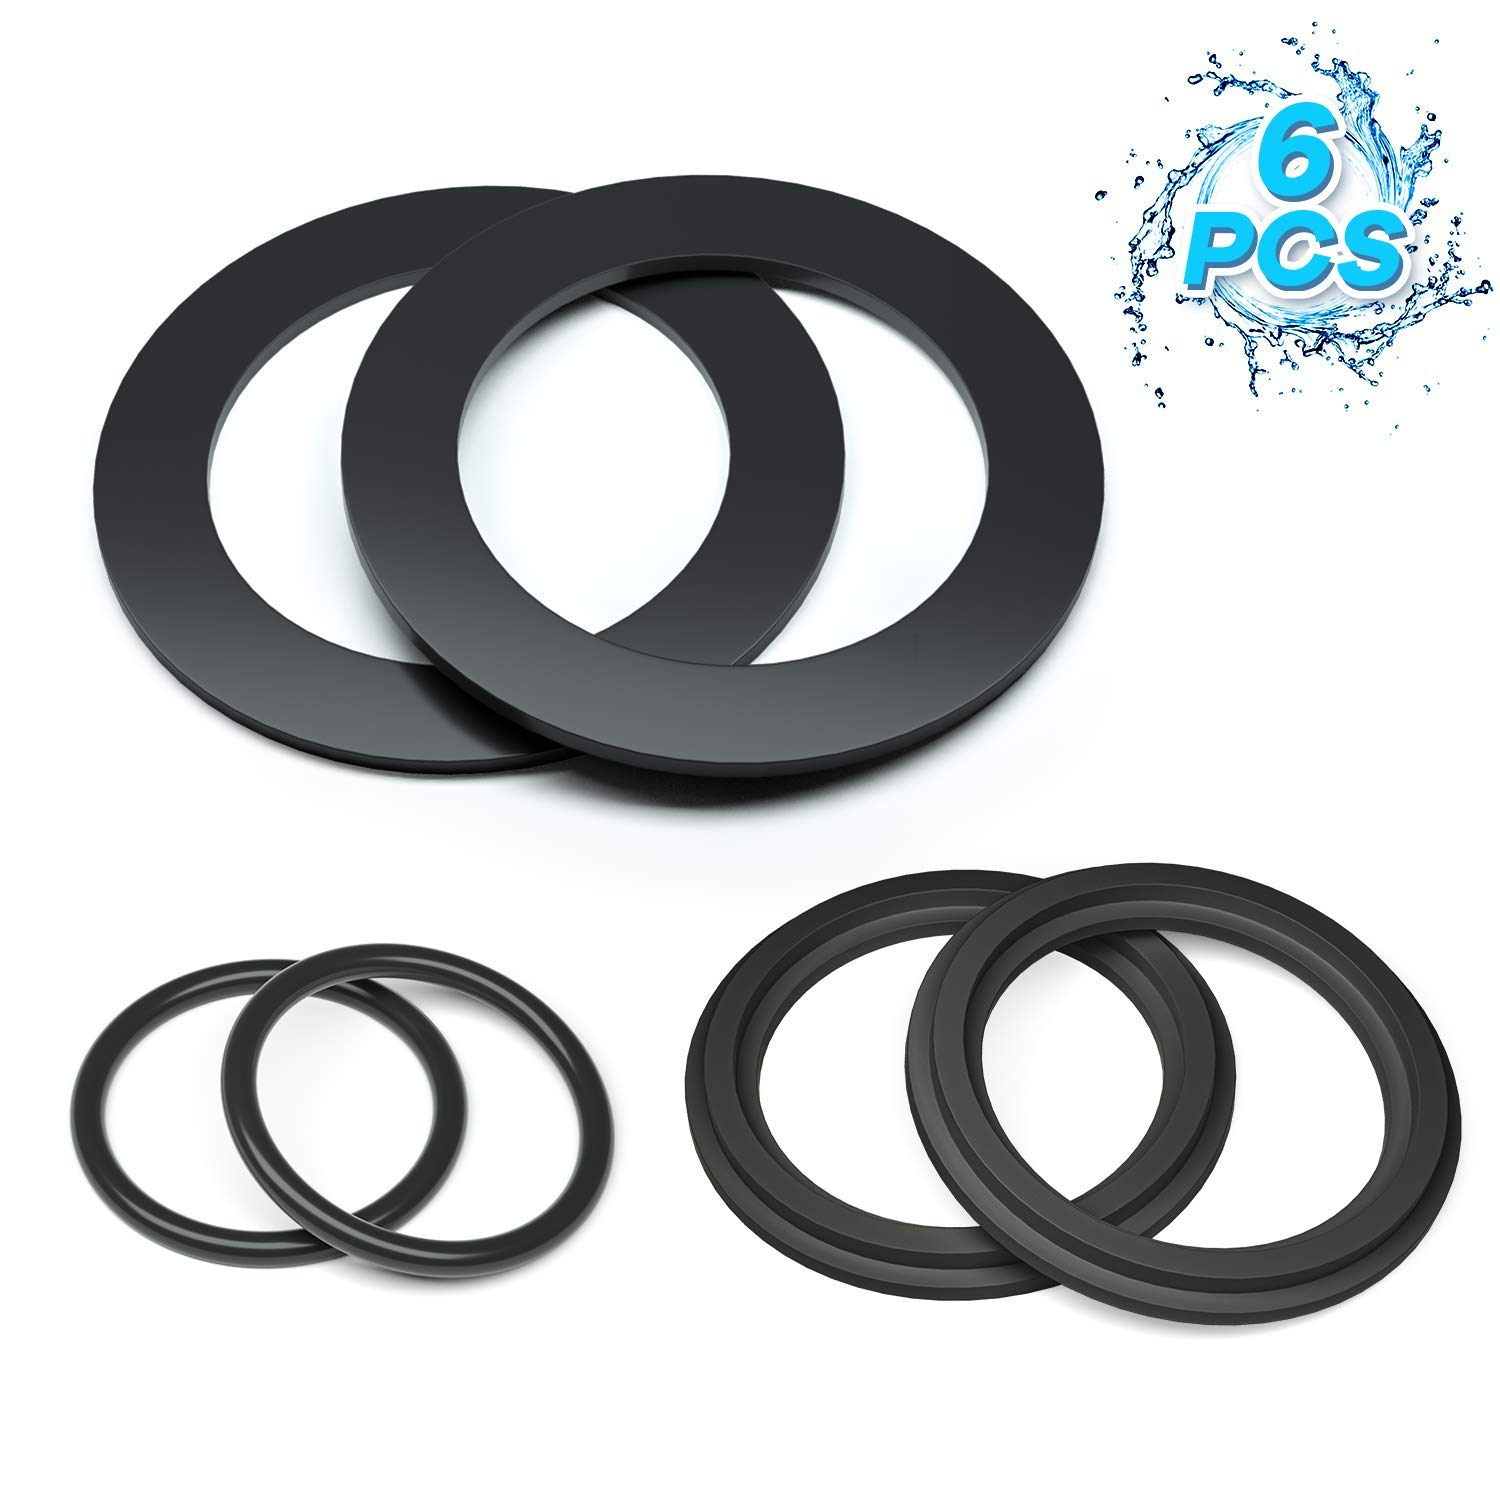 HENMI 25076RP Washer and Ring Kit for 1-1/2in Fittings, O-Ring Rubber Washer for Intex Pool Plunger Valves and Intex Replacement Gasket (6 pcs) - 10745, 10262 and 10255